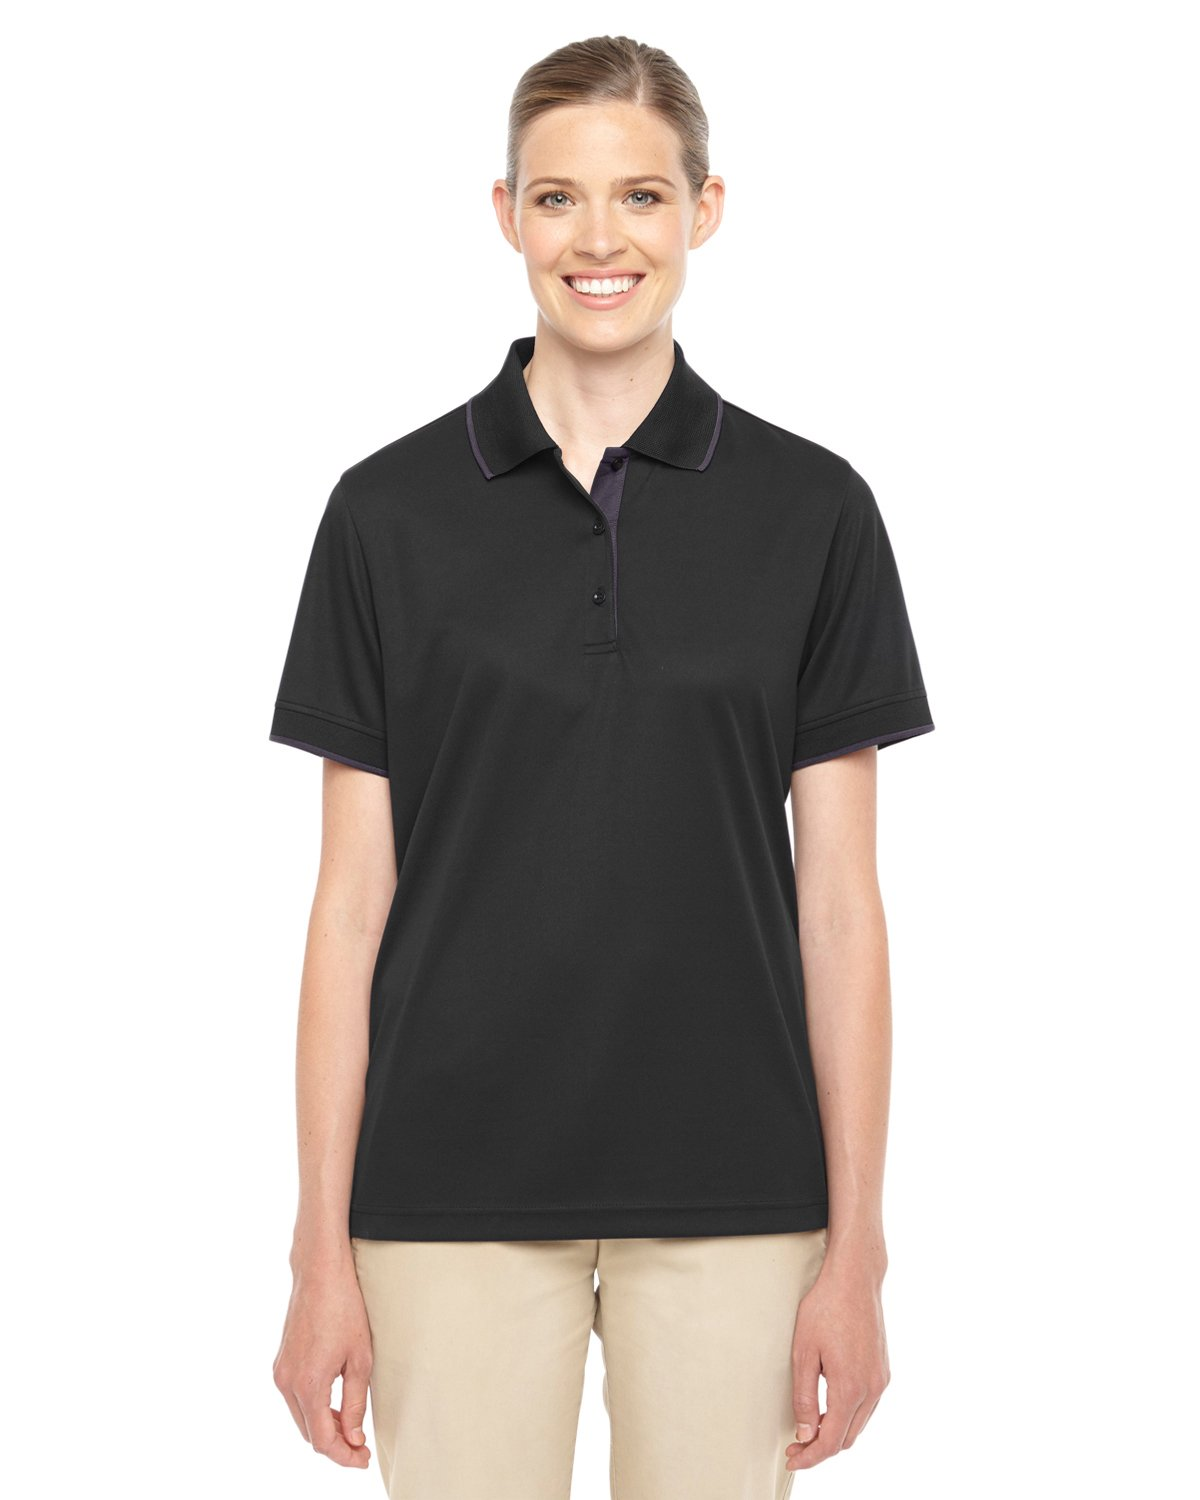 Ash City Core 365 Ladies Motive Performance Pique Polo with Tipped Collar (X-Small, Black/Carbon)